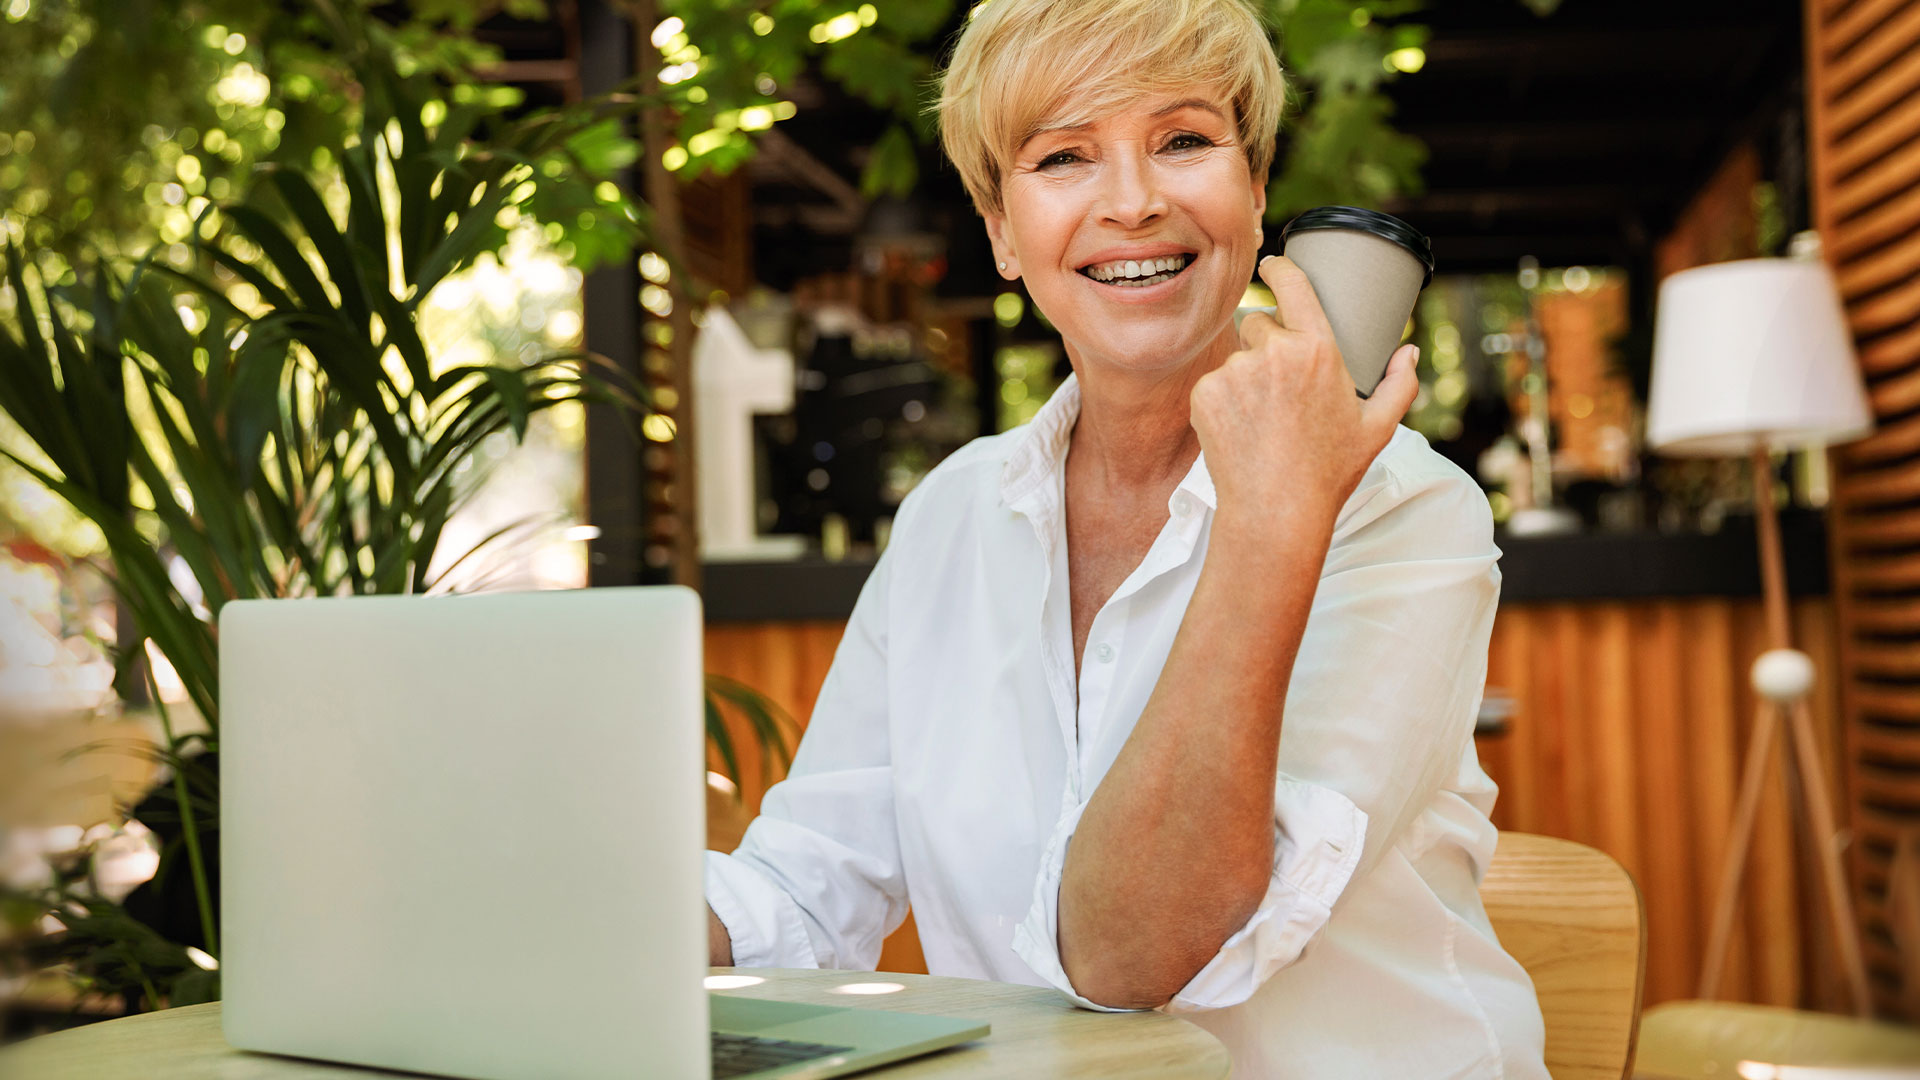 Professional woman sits outdoors working at her laptop with a coffee and smiles into the camera.